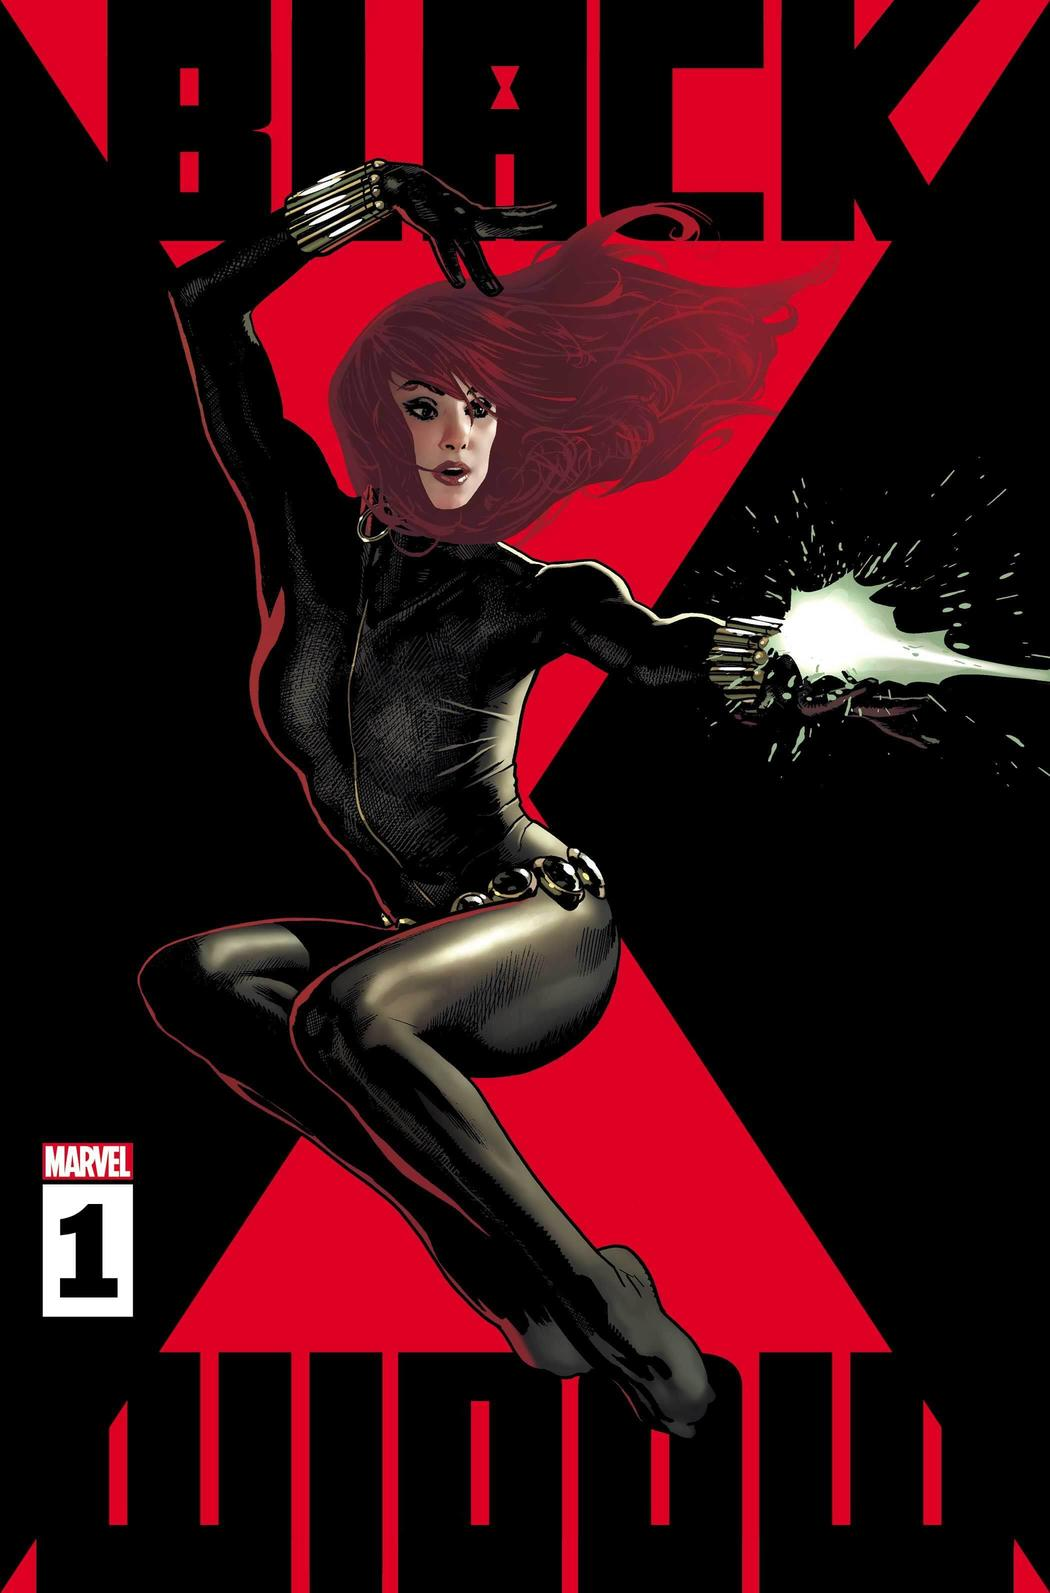 BLACK WIDOW #1 WRITTEN BY KELLY THOMPSON, ART BY ELENA CASAGRANDE, COVER BY ADAM HUGHES